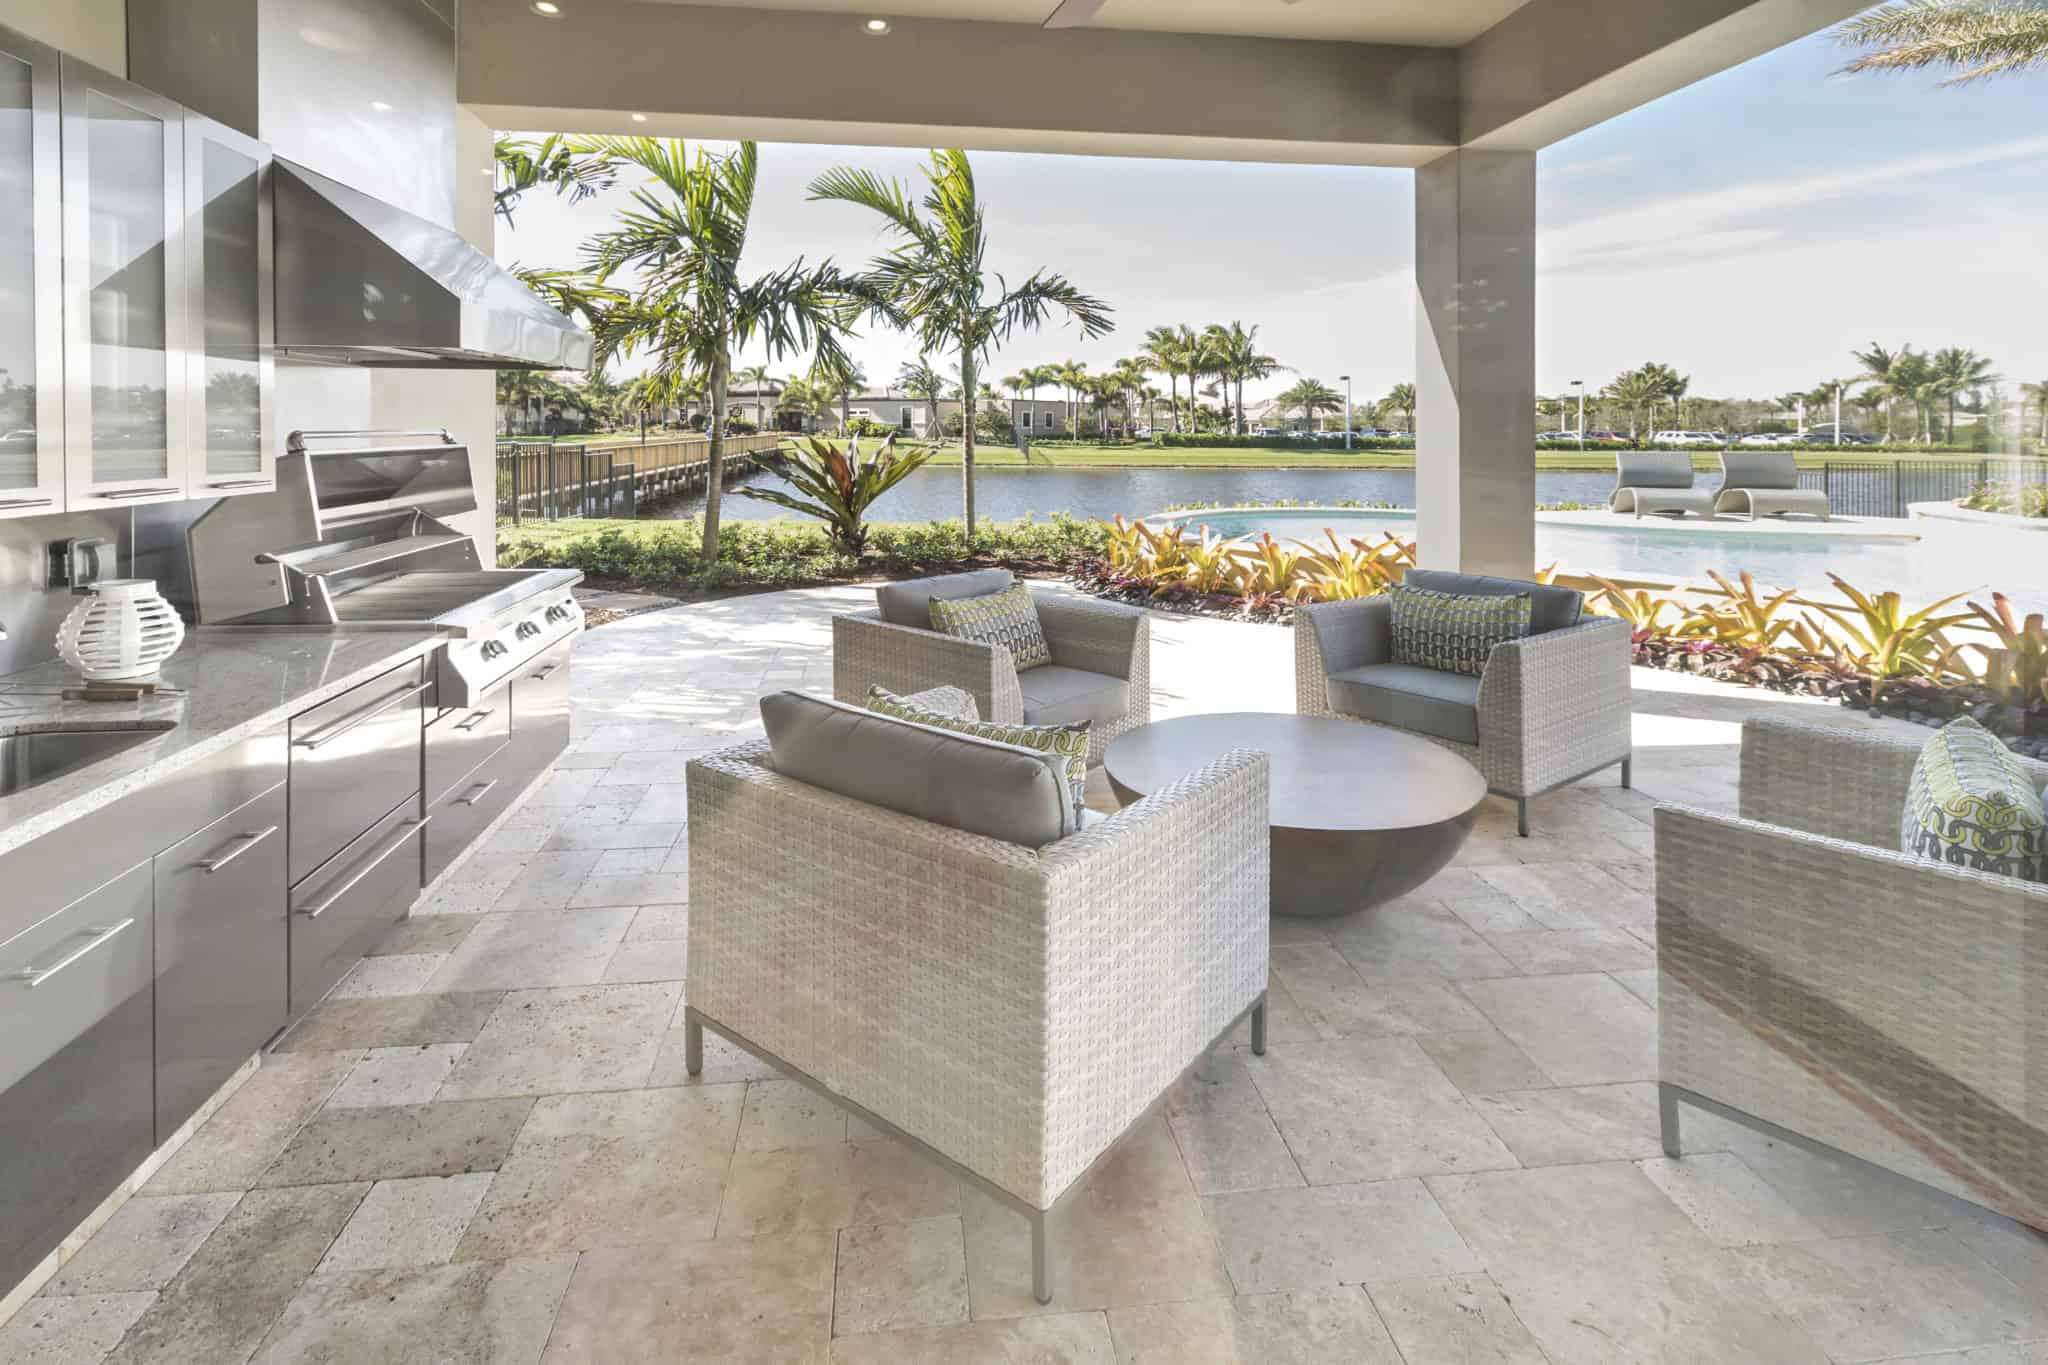 white outdoor kitchen built on large patio